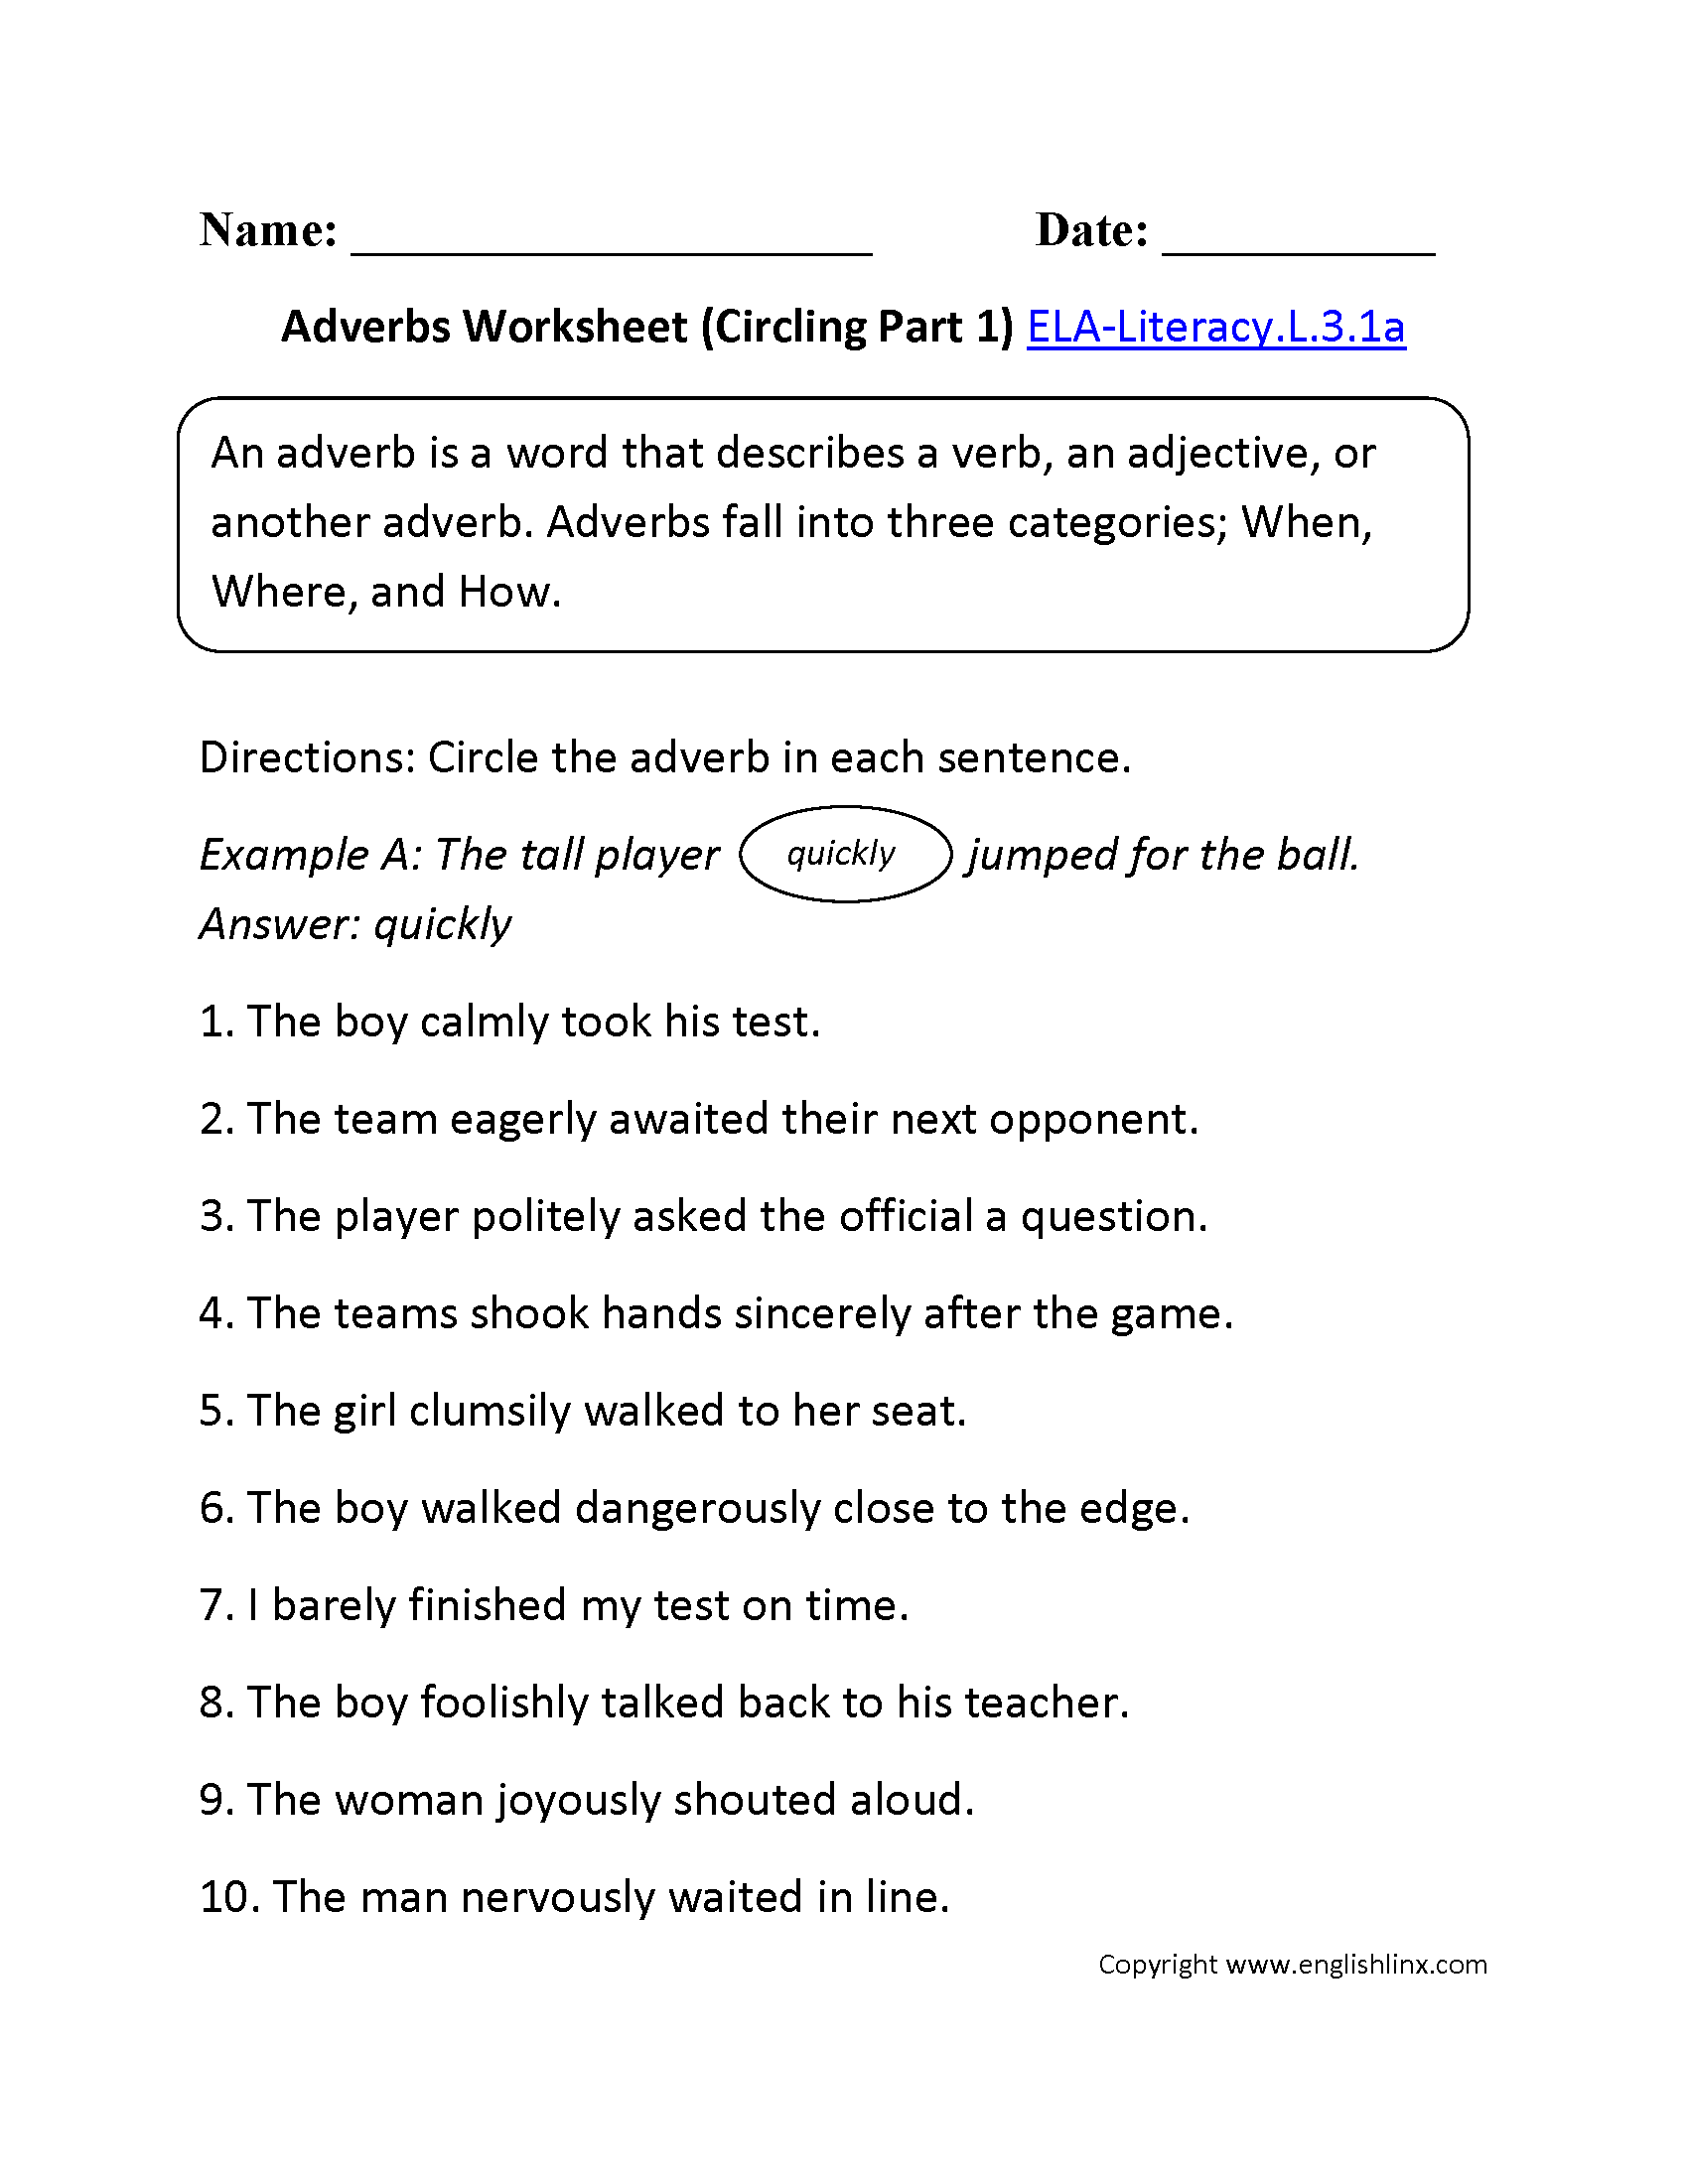 Reading Comprehension Worksheet Painting